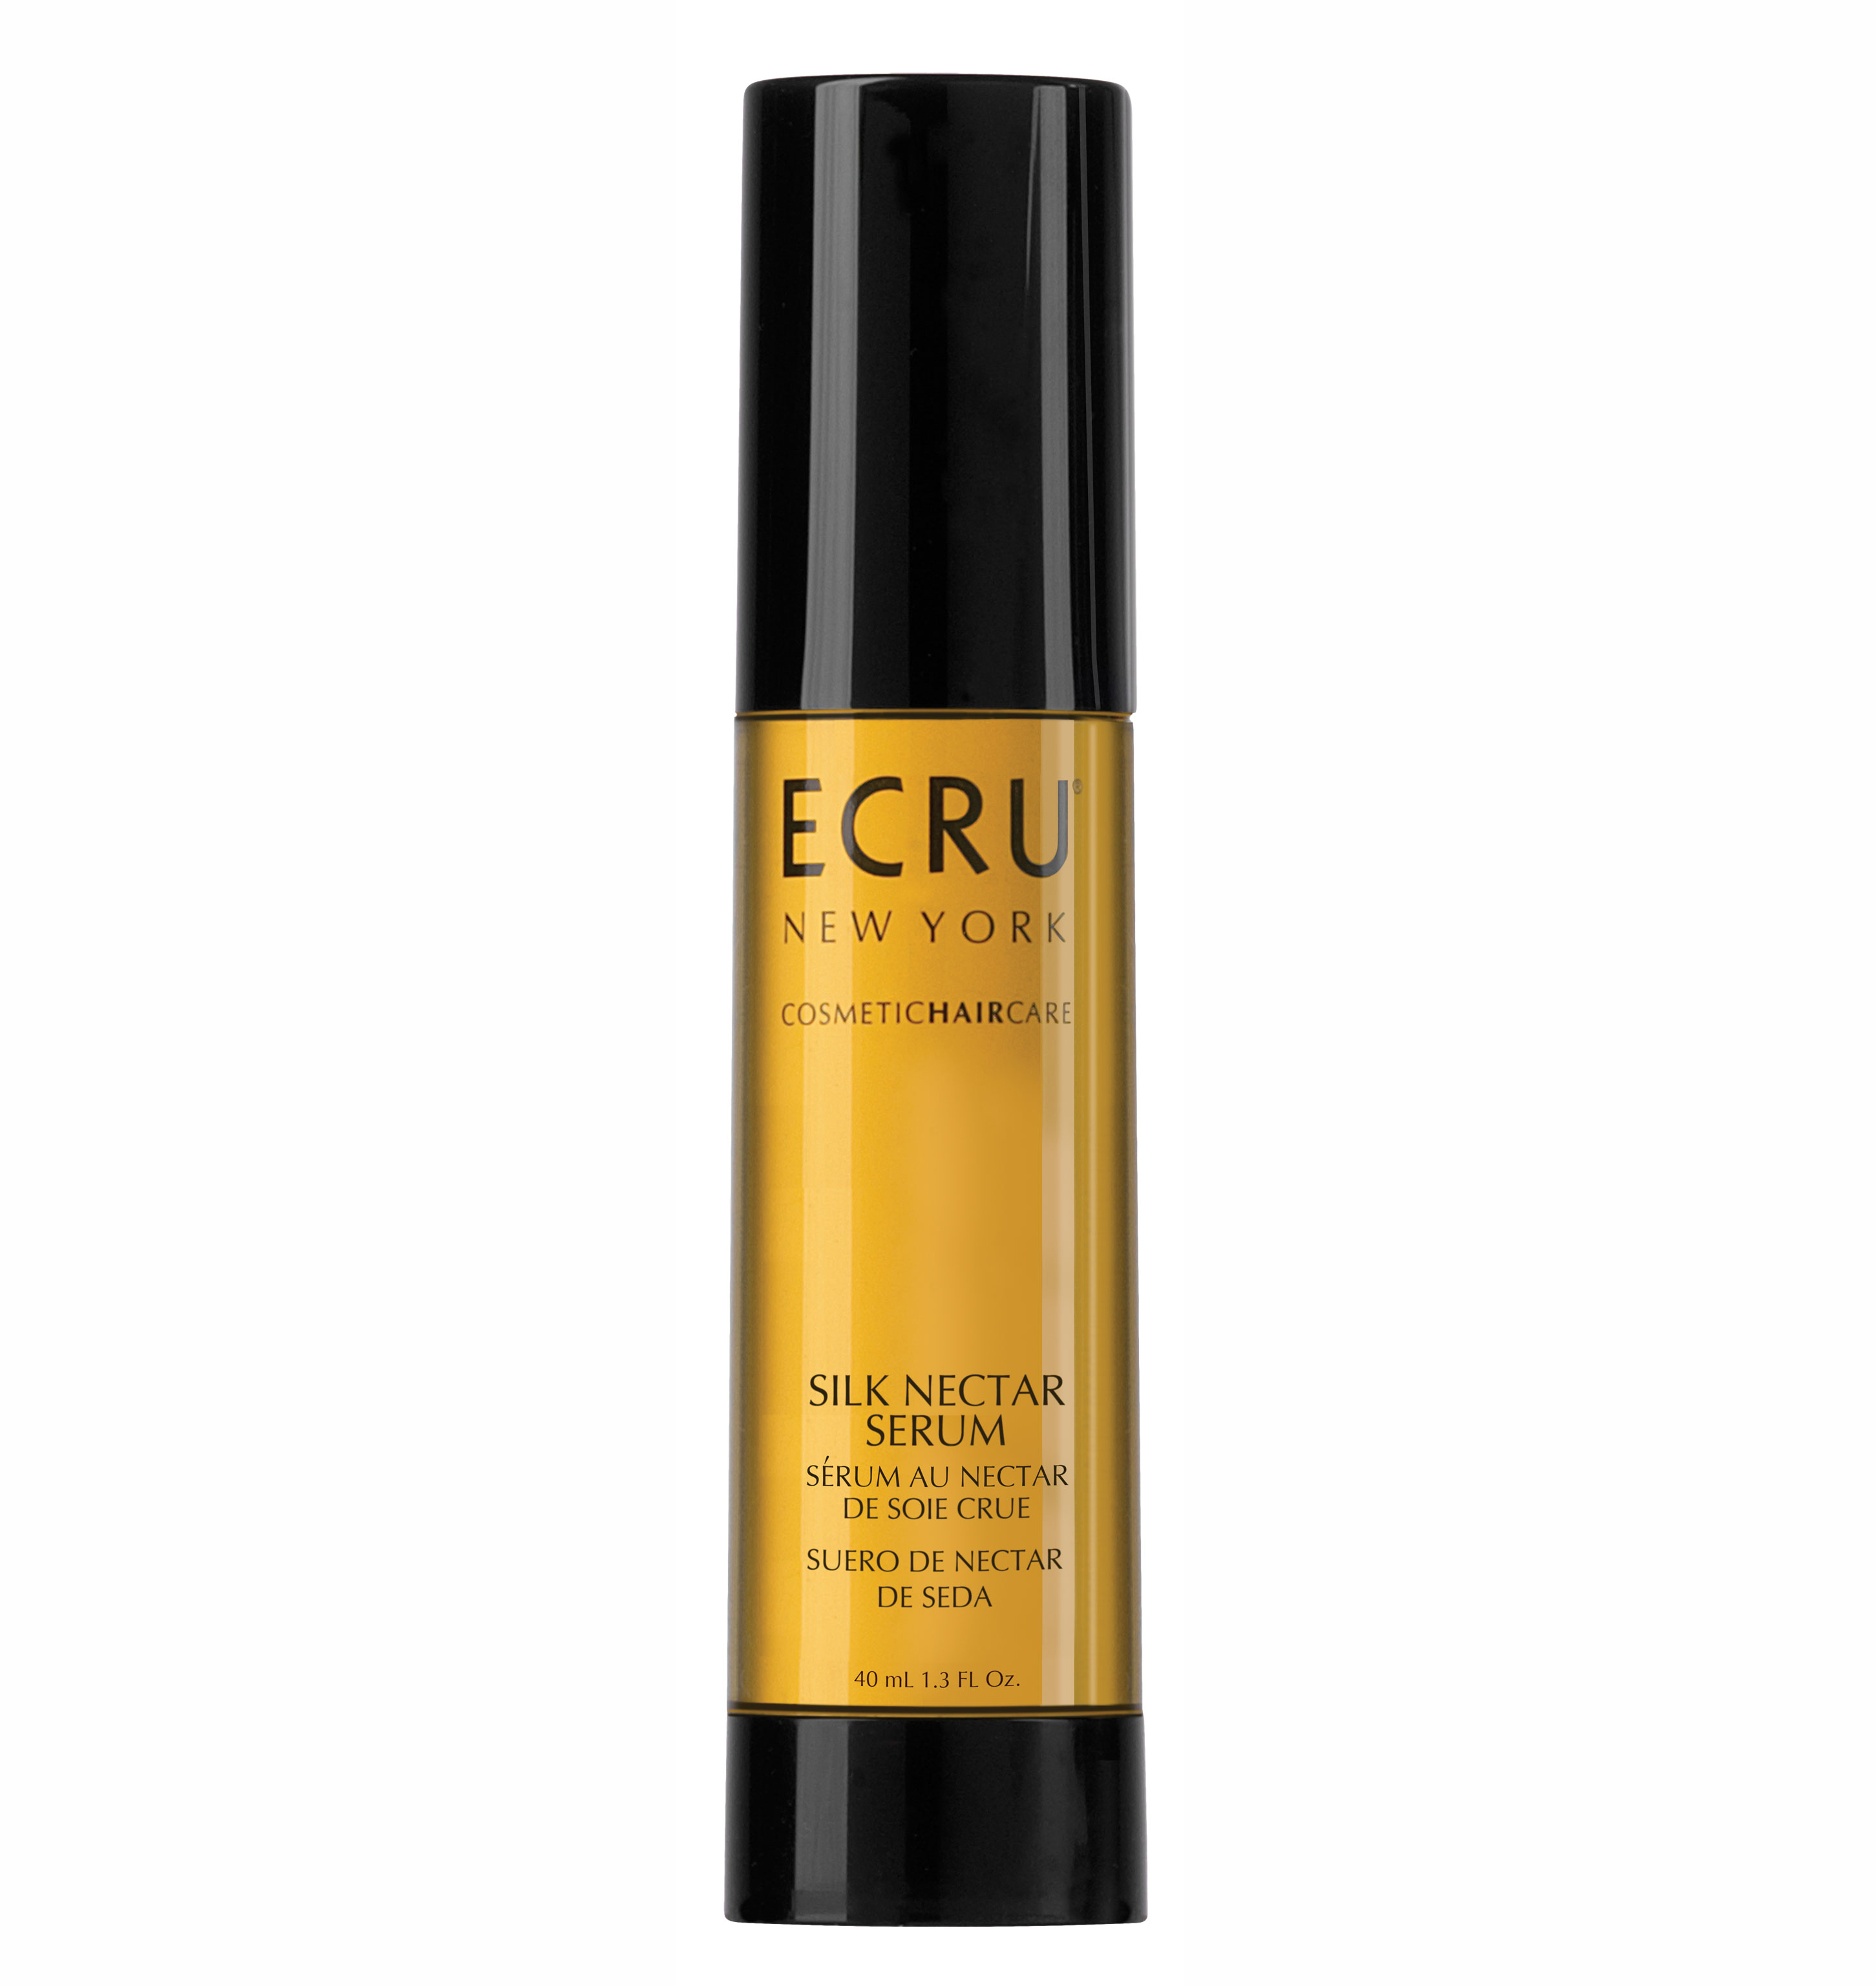 ECRU New York Silk Nectar Serum